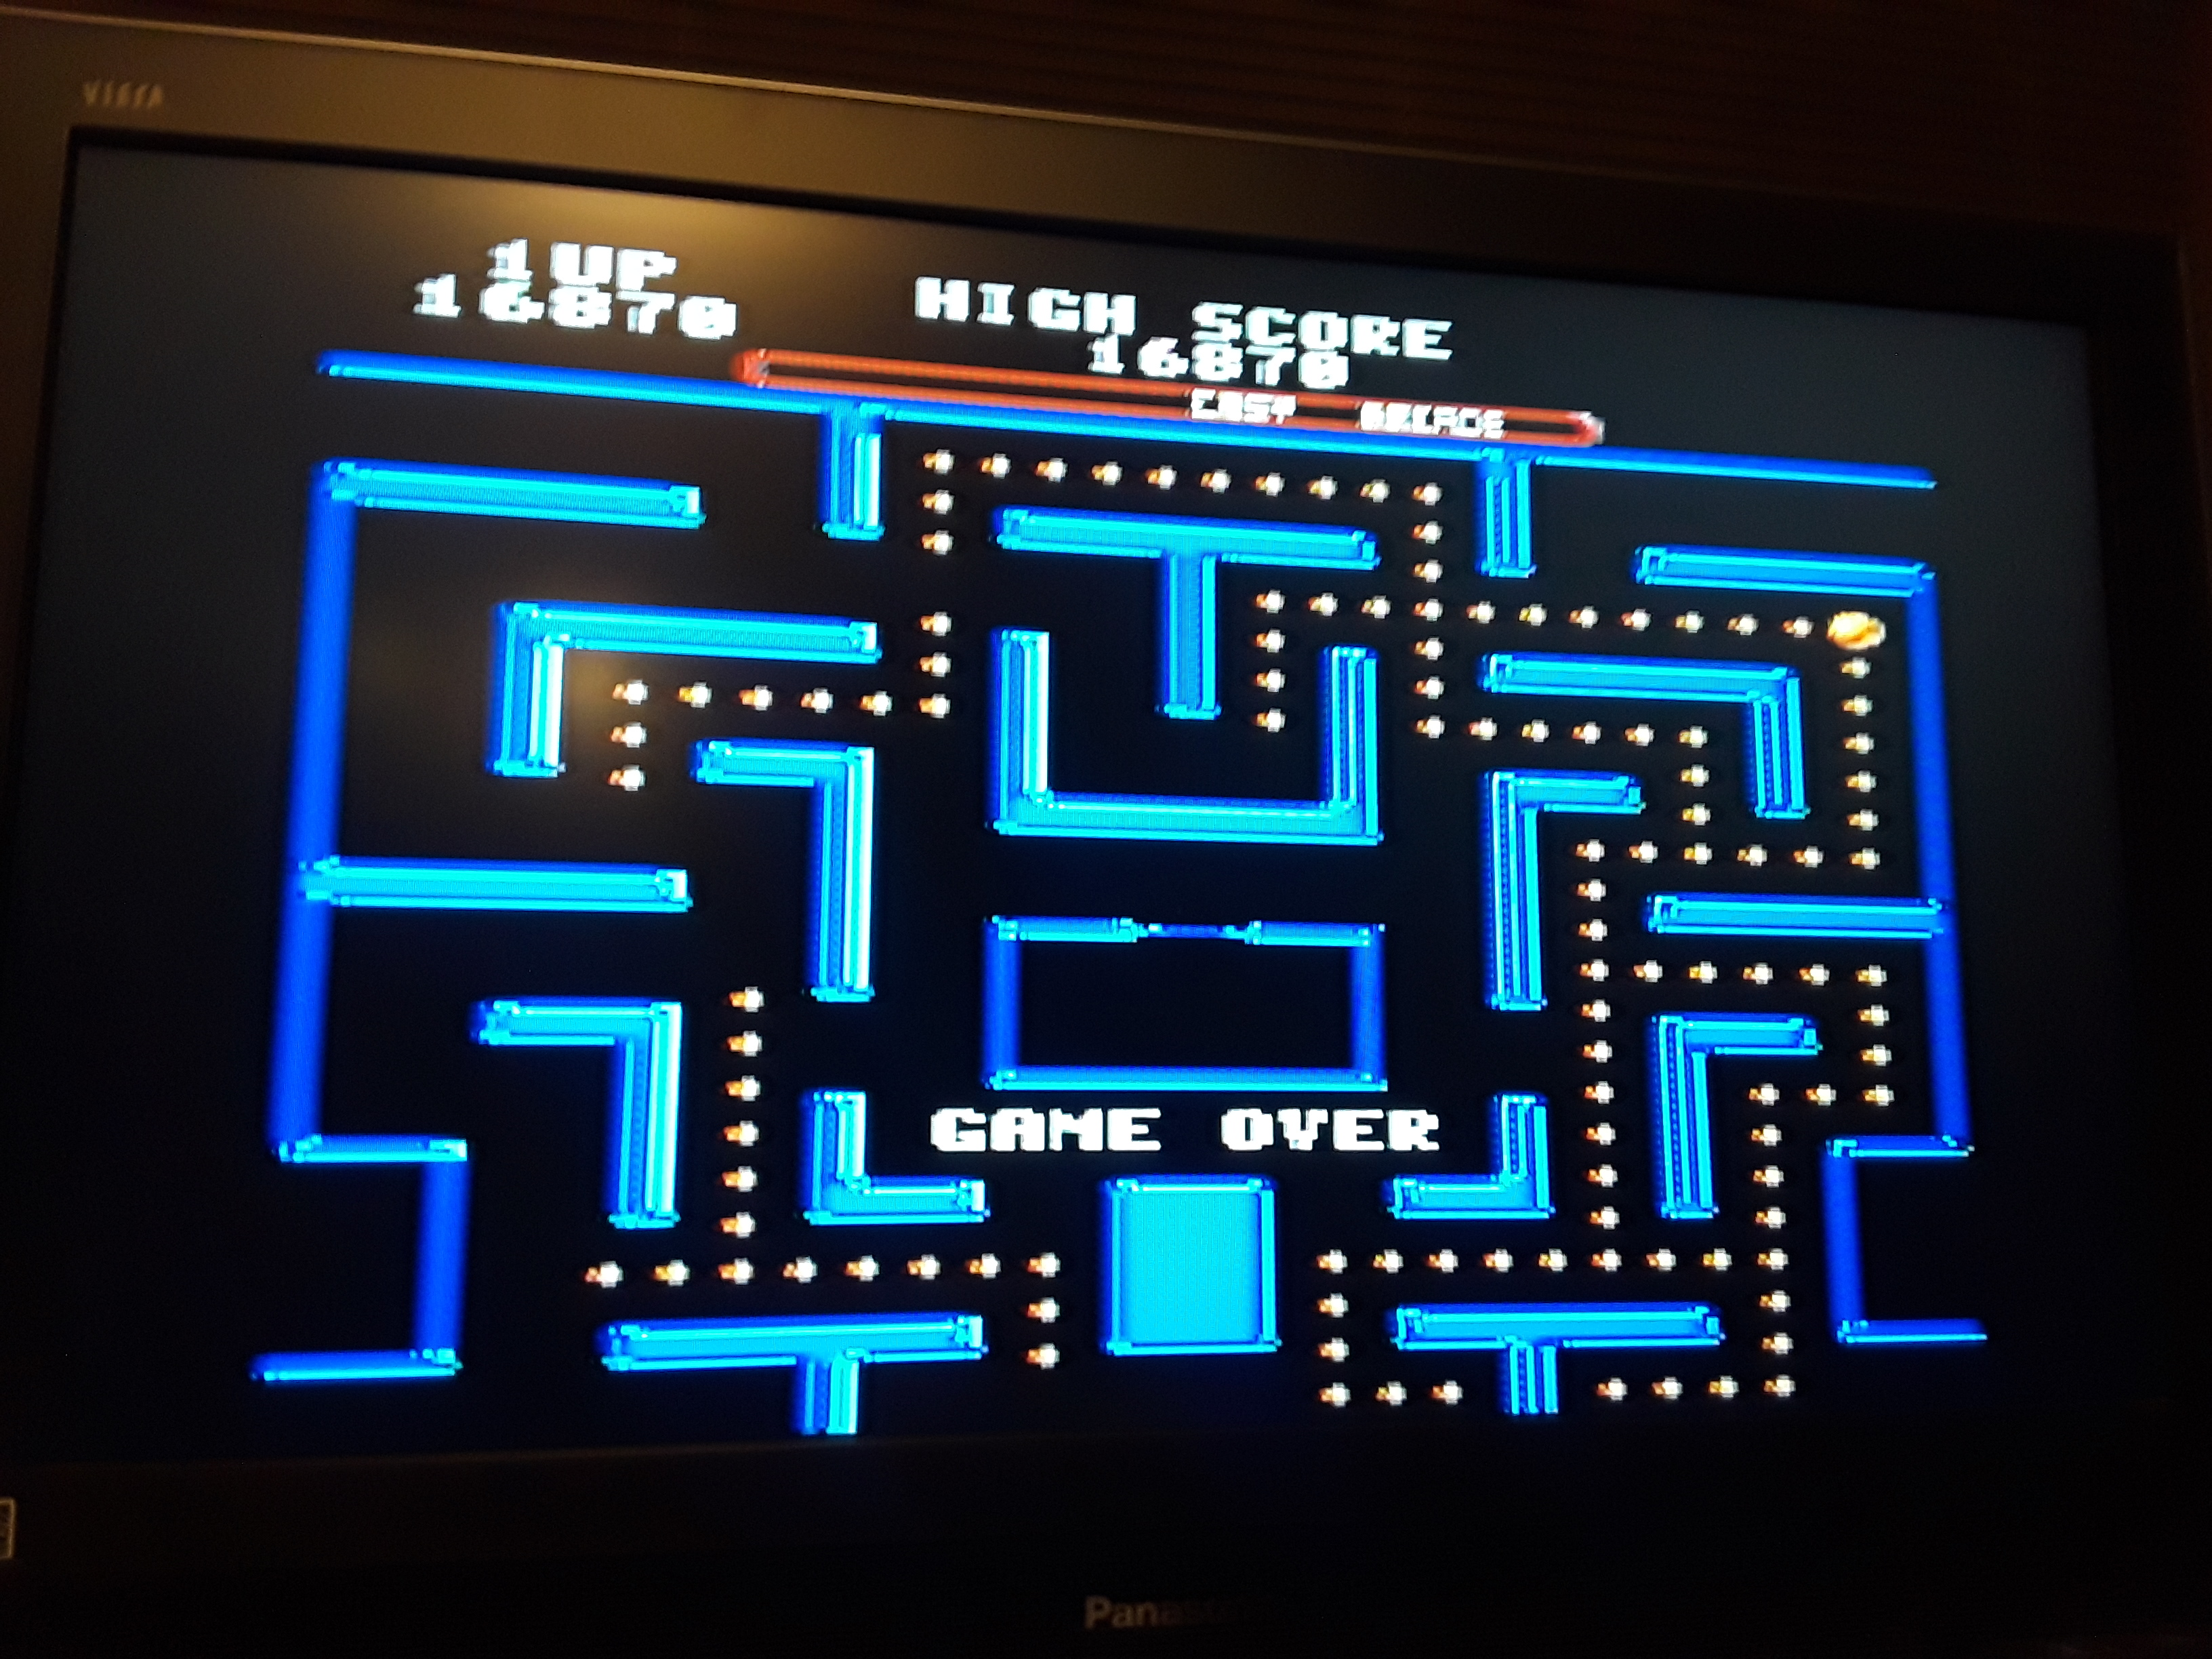 Ms. Pac-Man [Easy] 16,870 points